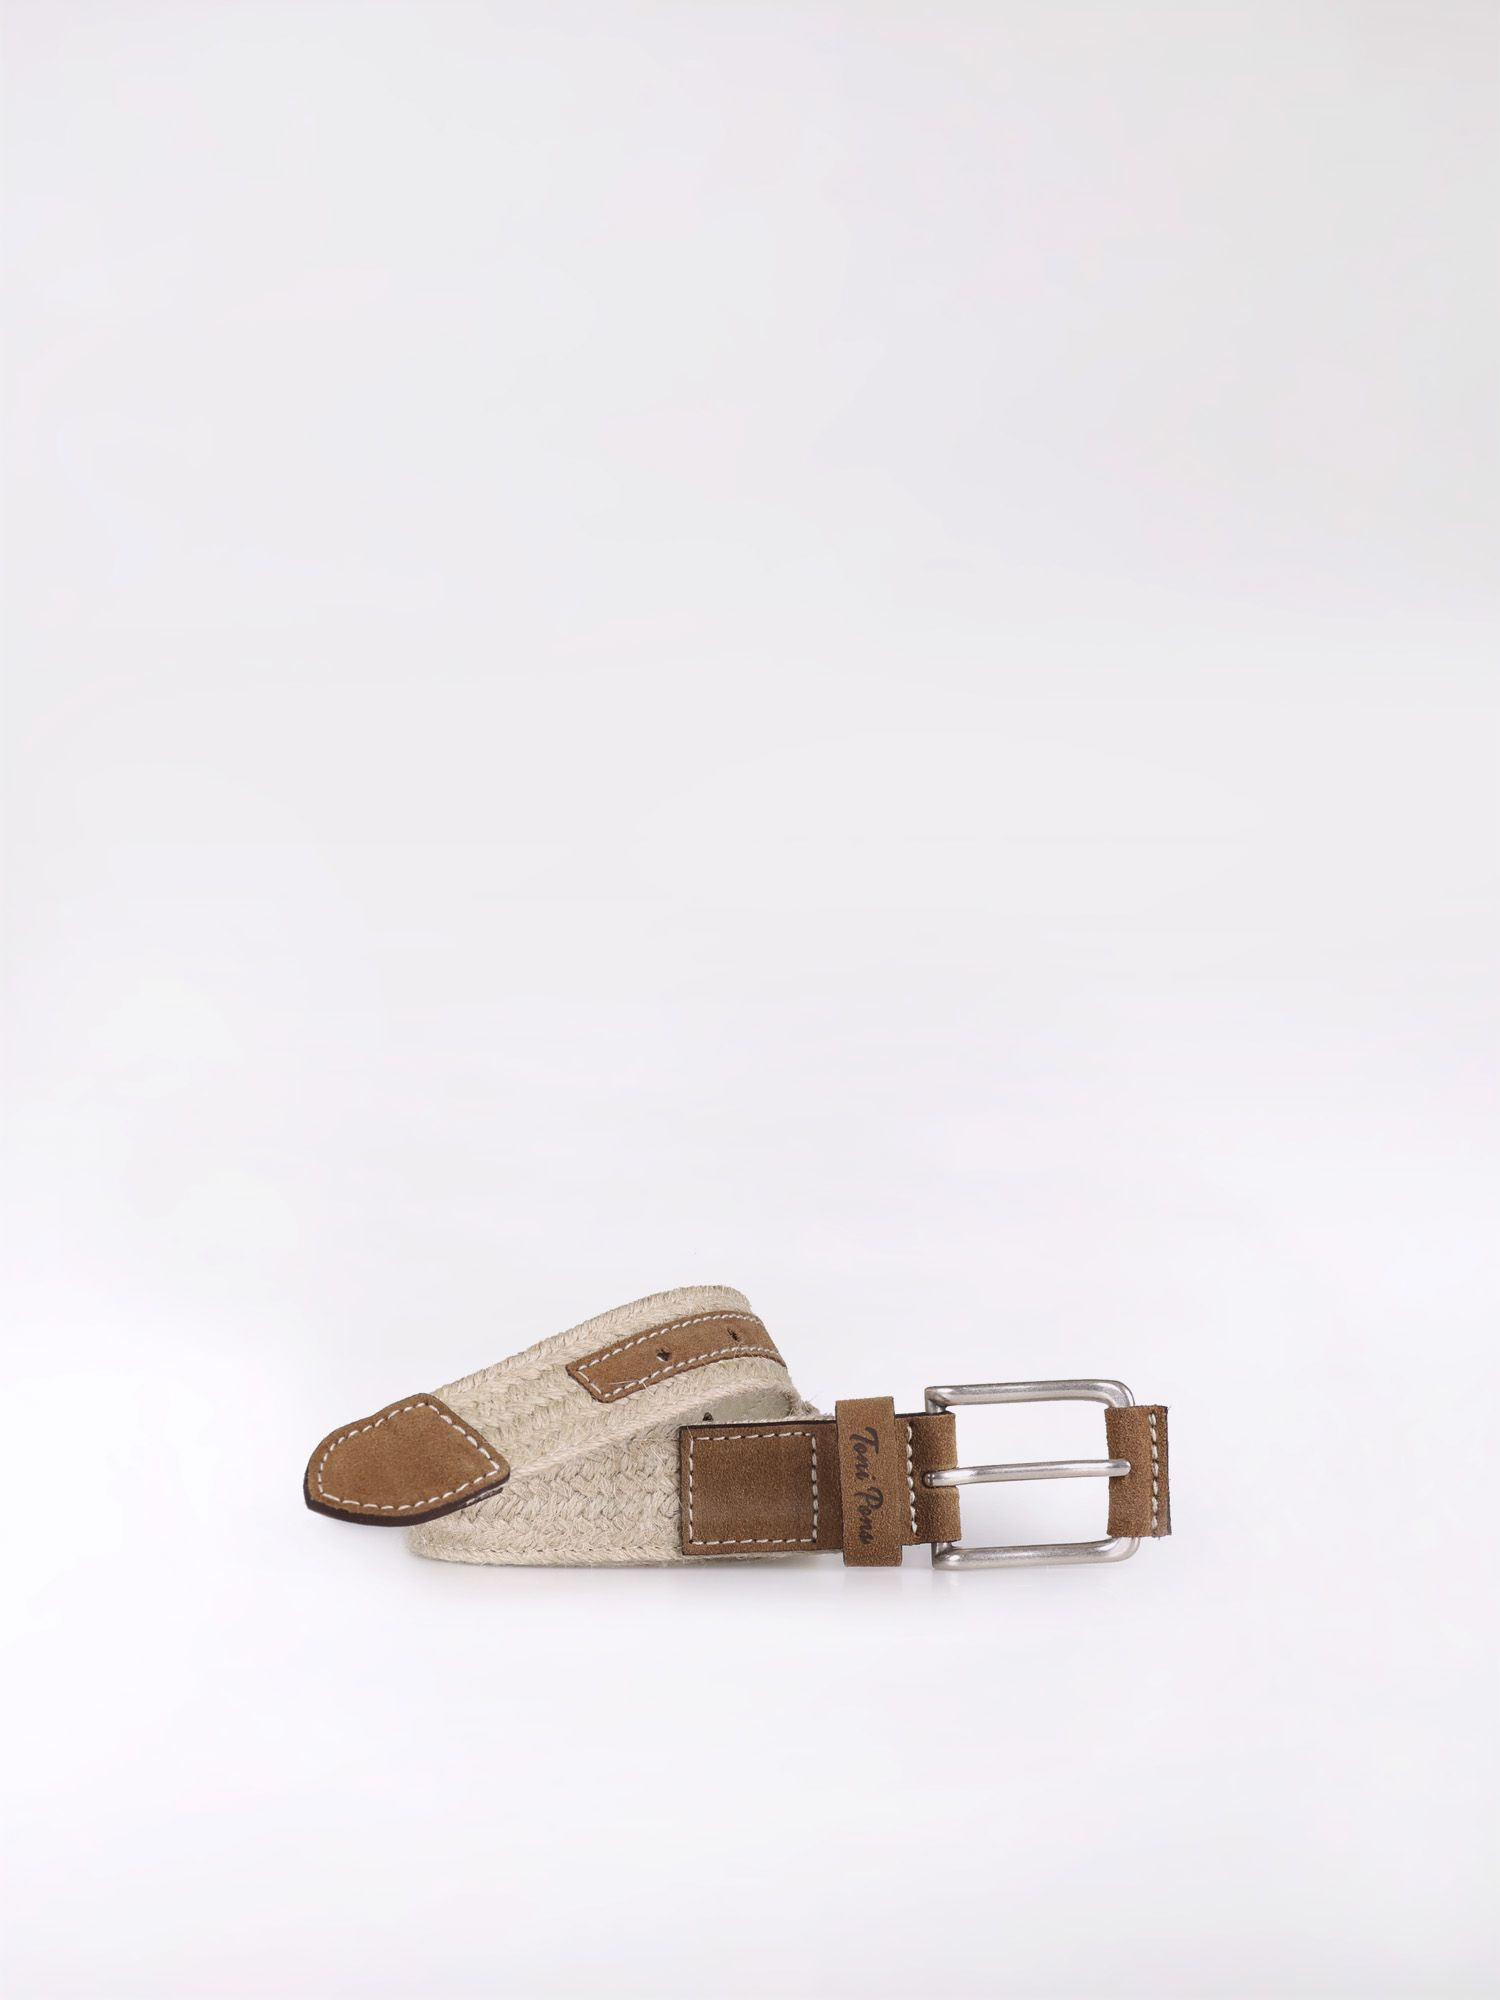 Summer belt in brown - EDU